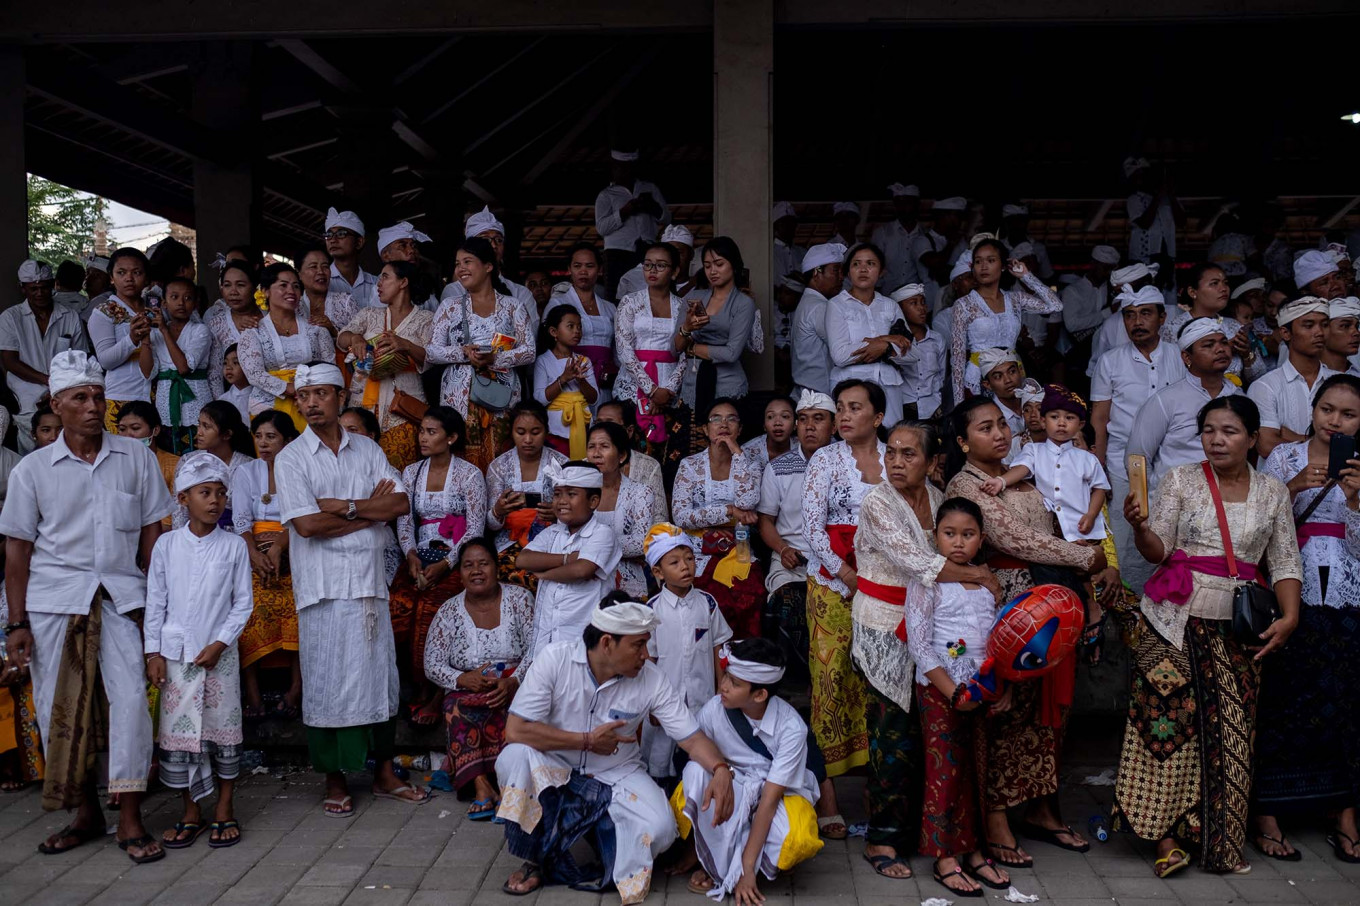 Balinese people gather during Ngerebong at the Petilan temple on Jan. 13 in Denpasar, Bali. JP/Agung Parameswara